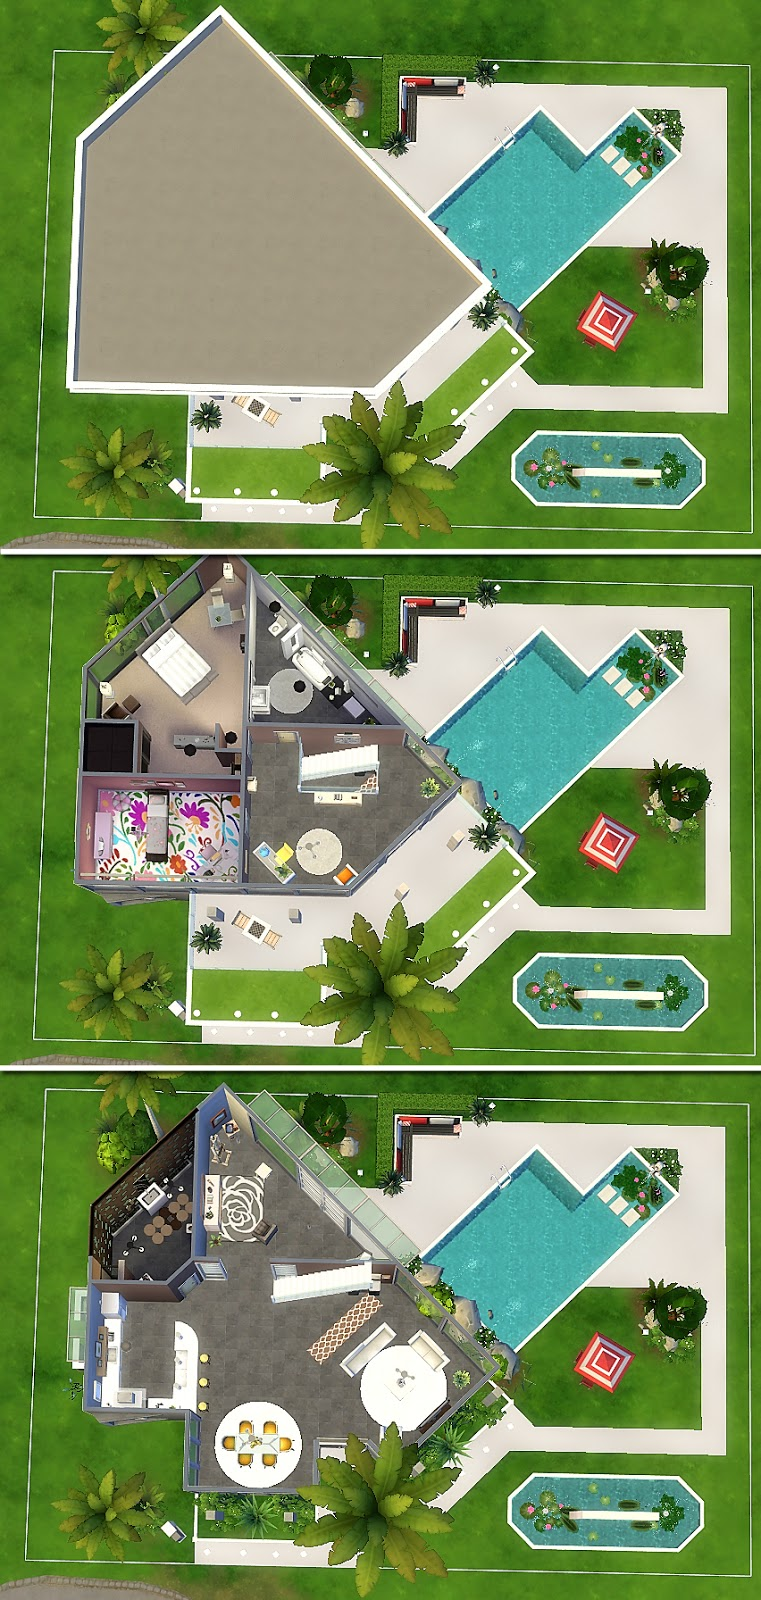 House 25 the sims 4 via sims for Casa moderna sims 3 sin expansiones